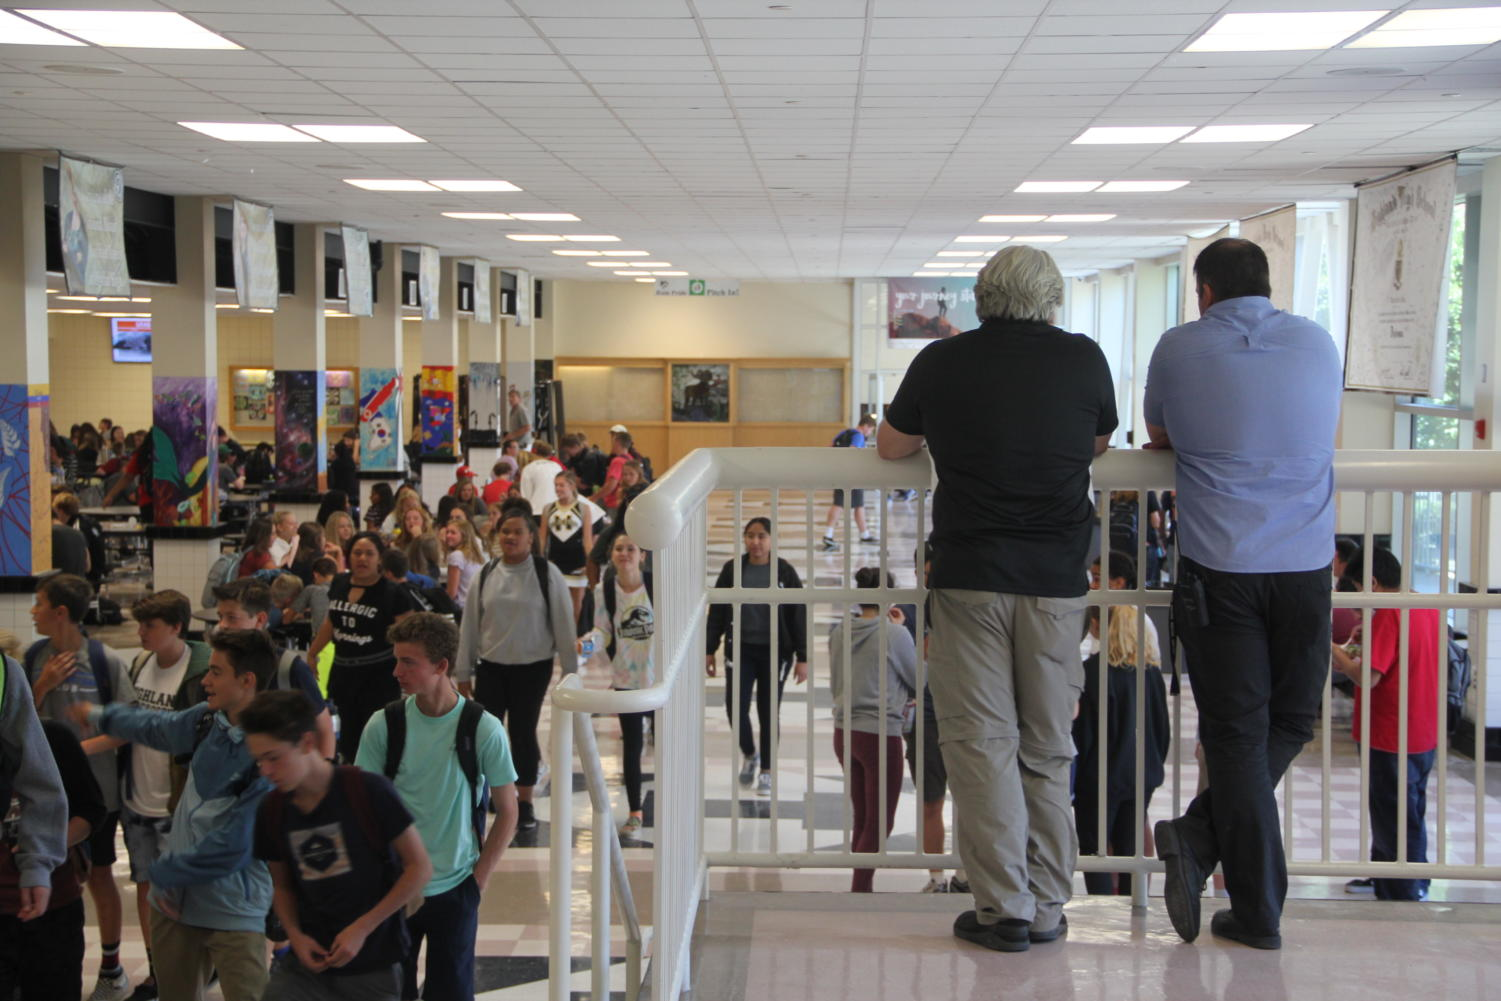 Principal Chris Jenson and vice principal Jon Jensen watch over the cafeteria during lunch.